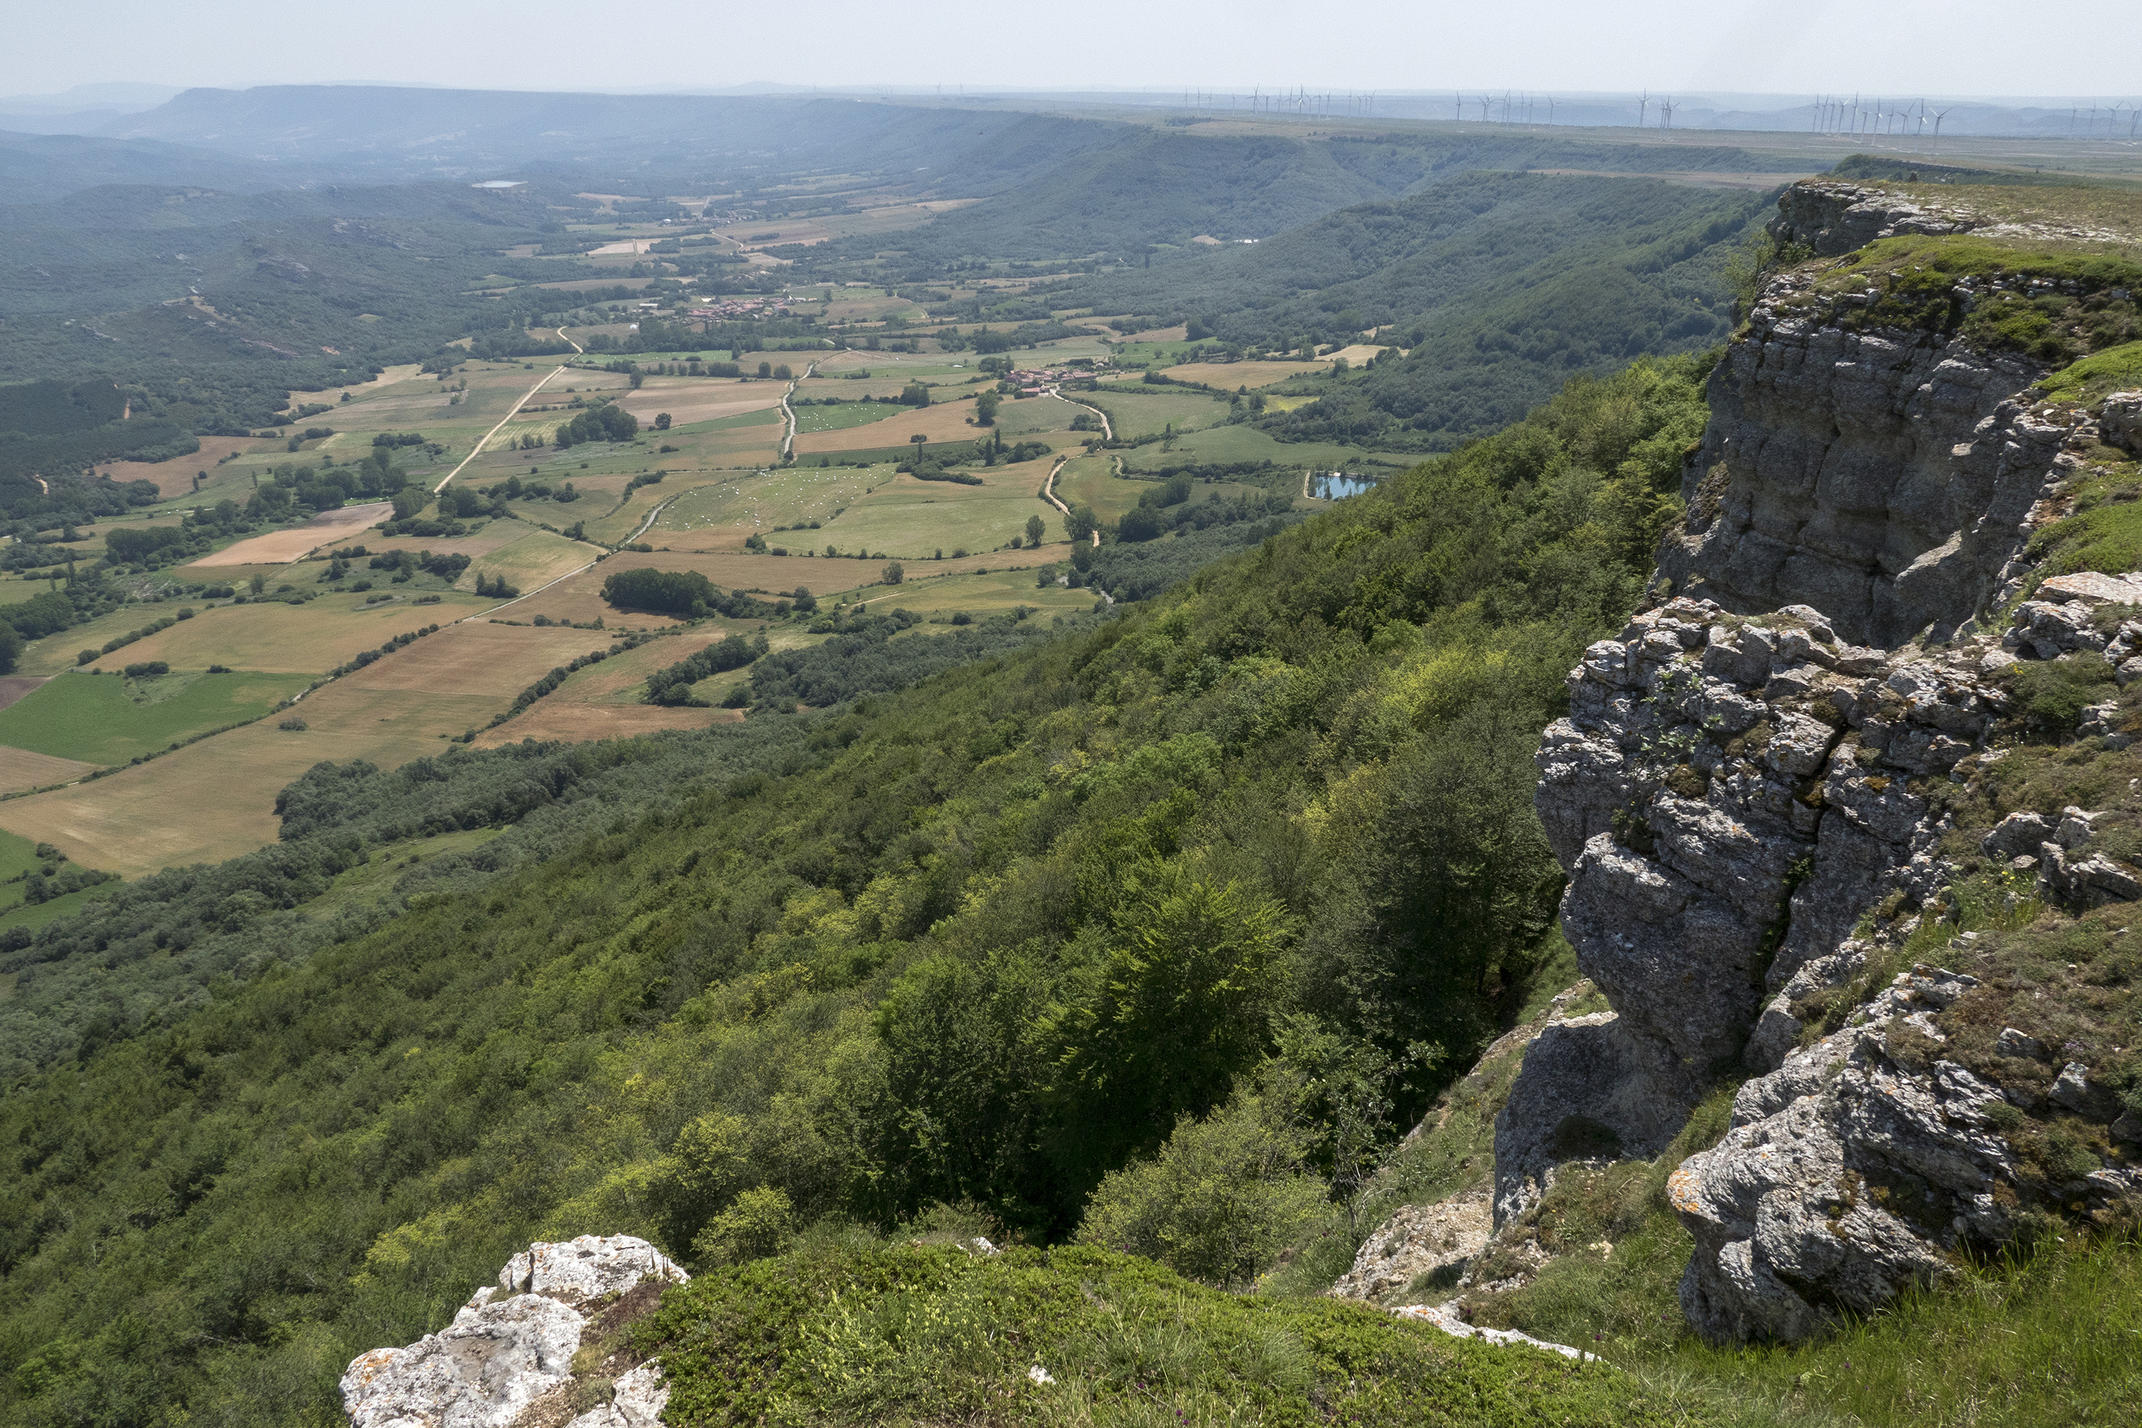 view over the plains of castile